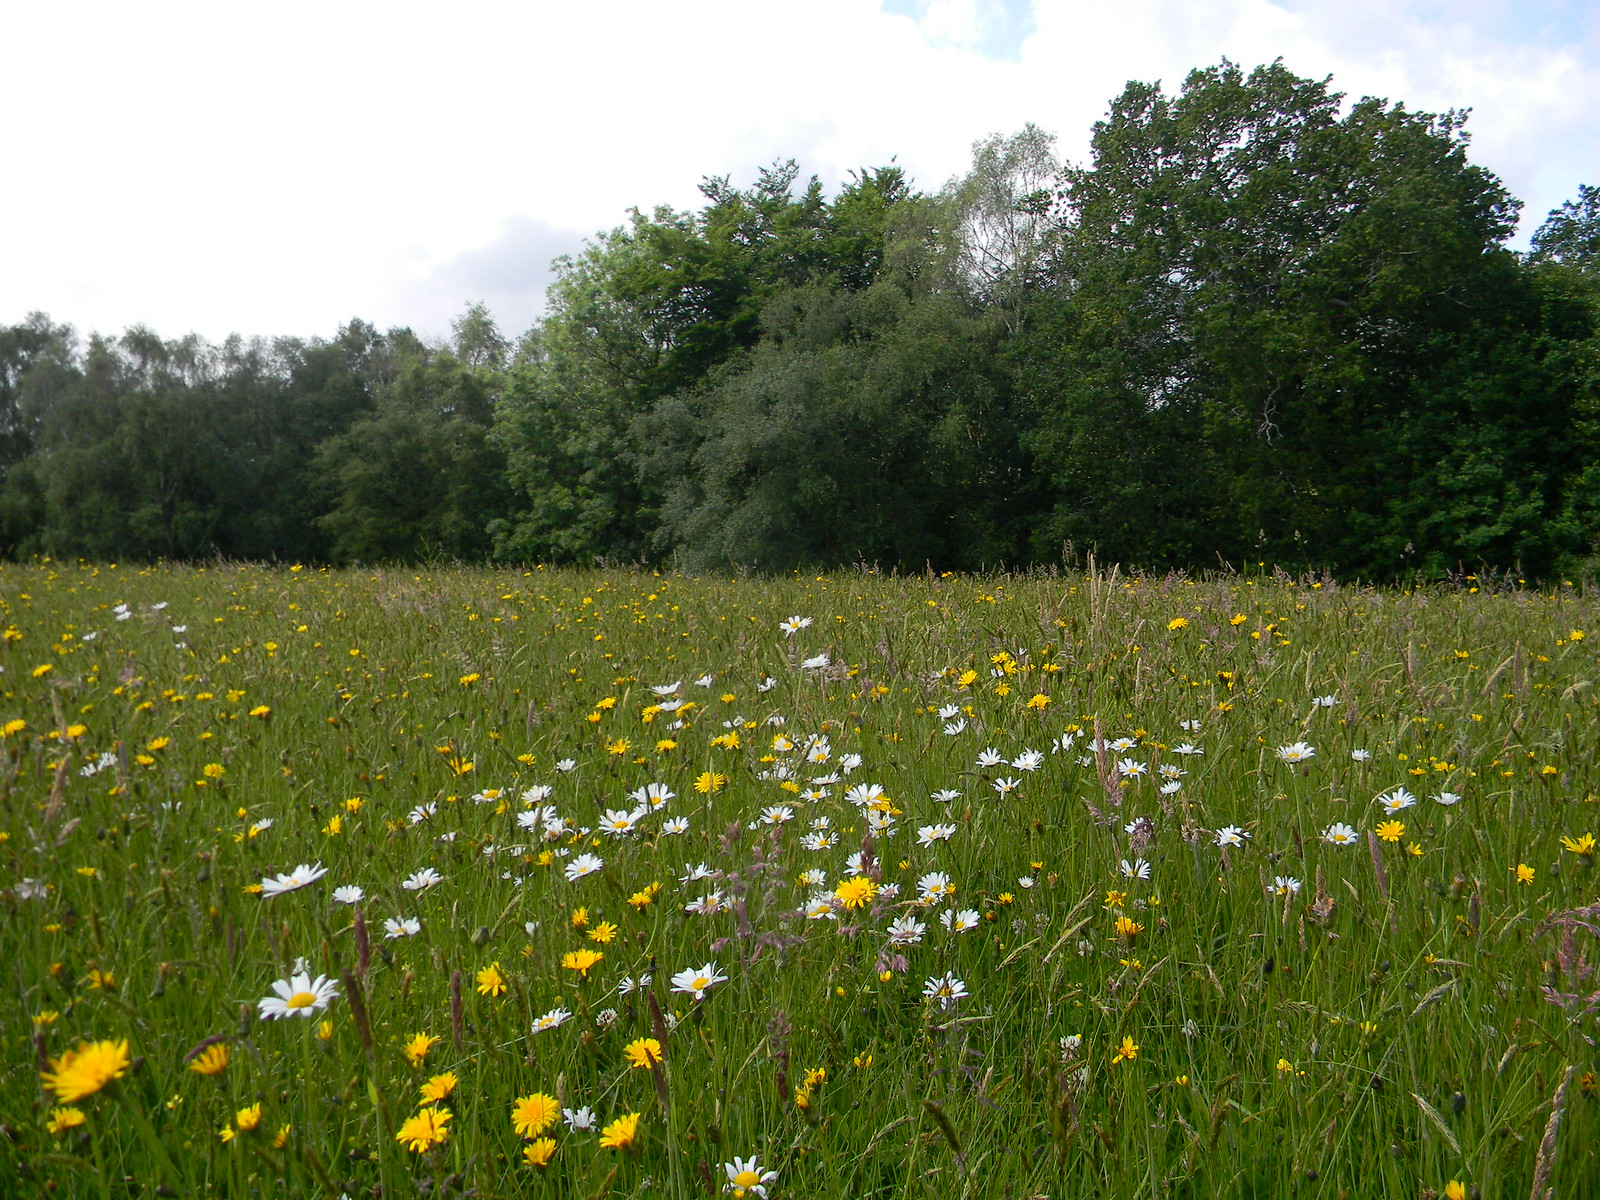 Wildflower meadow Valewood Park Haslemere to Midhurst